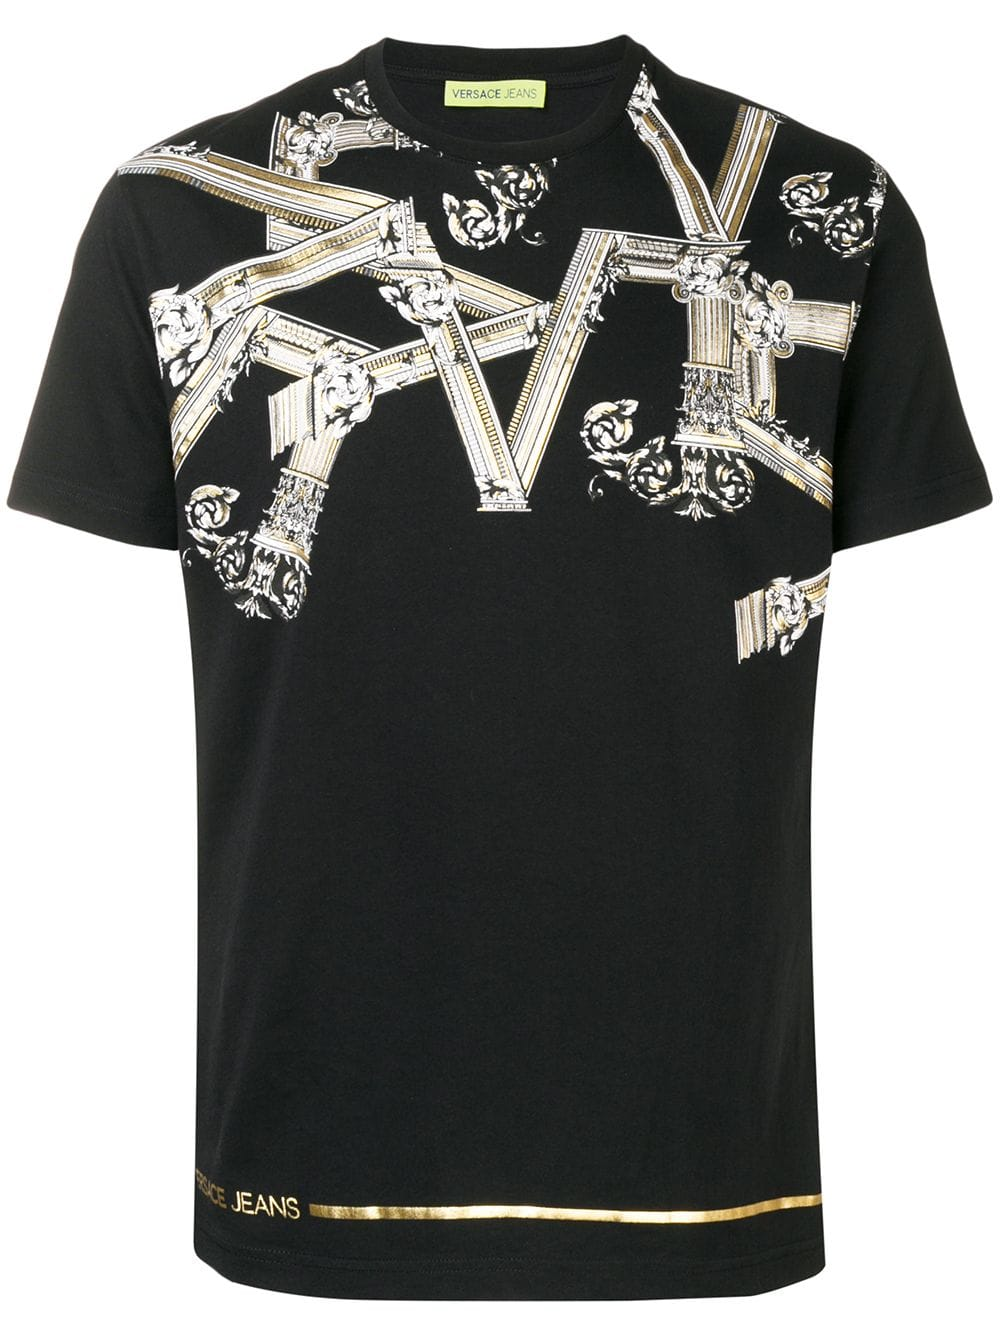 Versace Jeans Versace Jeans Pinted Round Neck T Shirt Black Versacejeans Cloth Versace Jeans Versace Jeans Shirt Versace